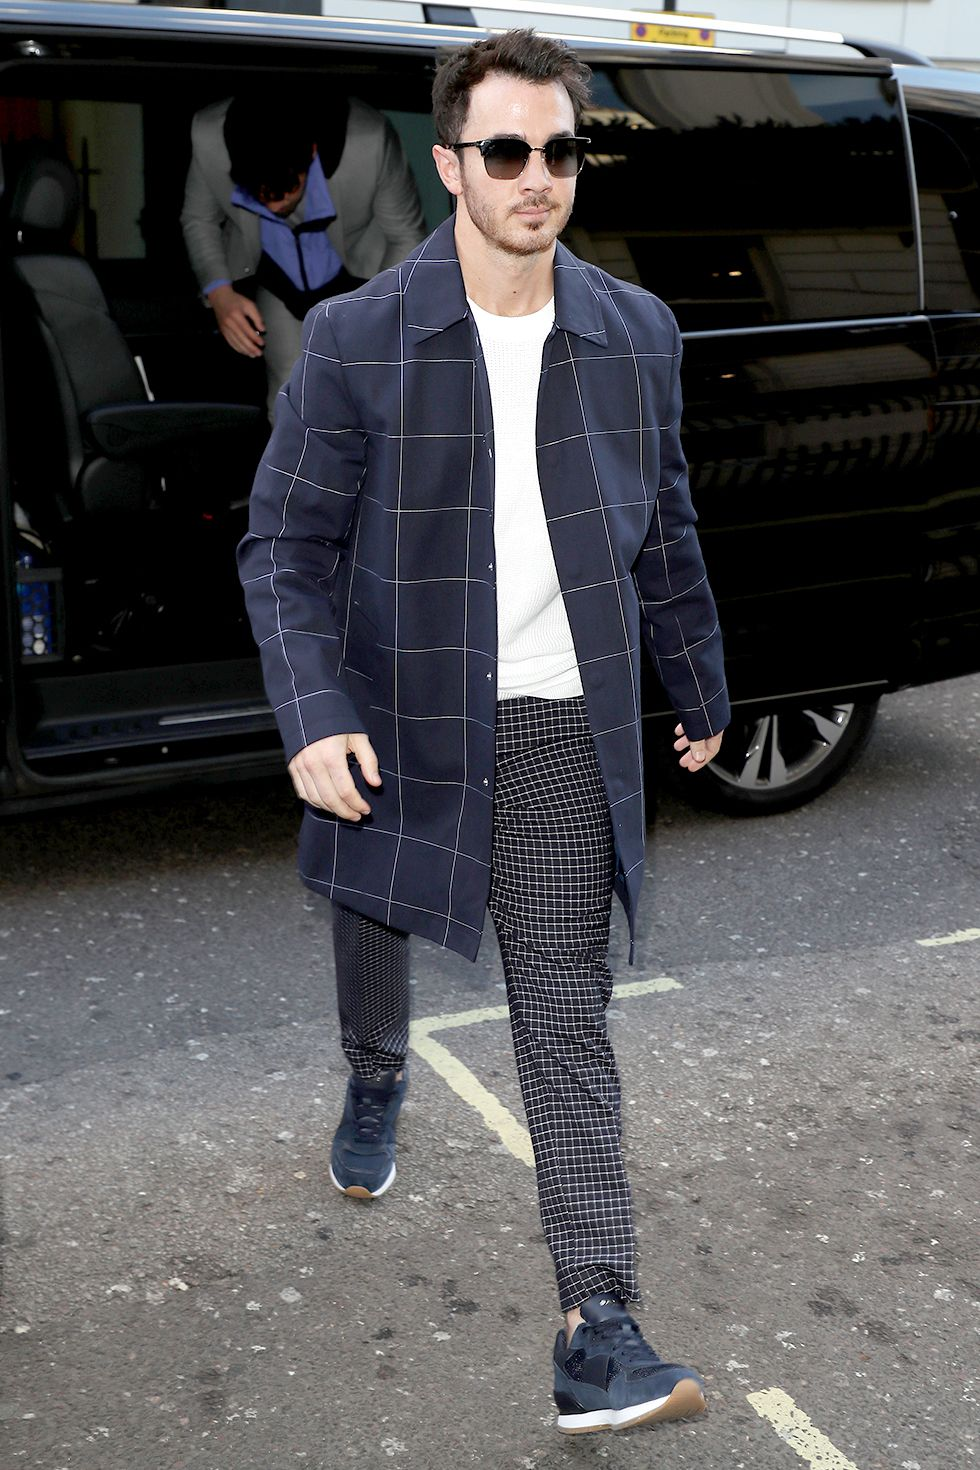 Kevin Jonas The oldest Jonas has been inching into the fashion world and we are ready for it. A white top and long, light jacket are perfect for spring.